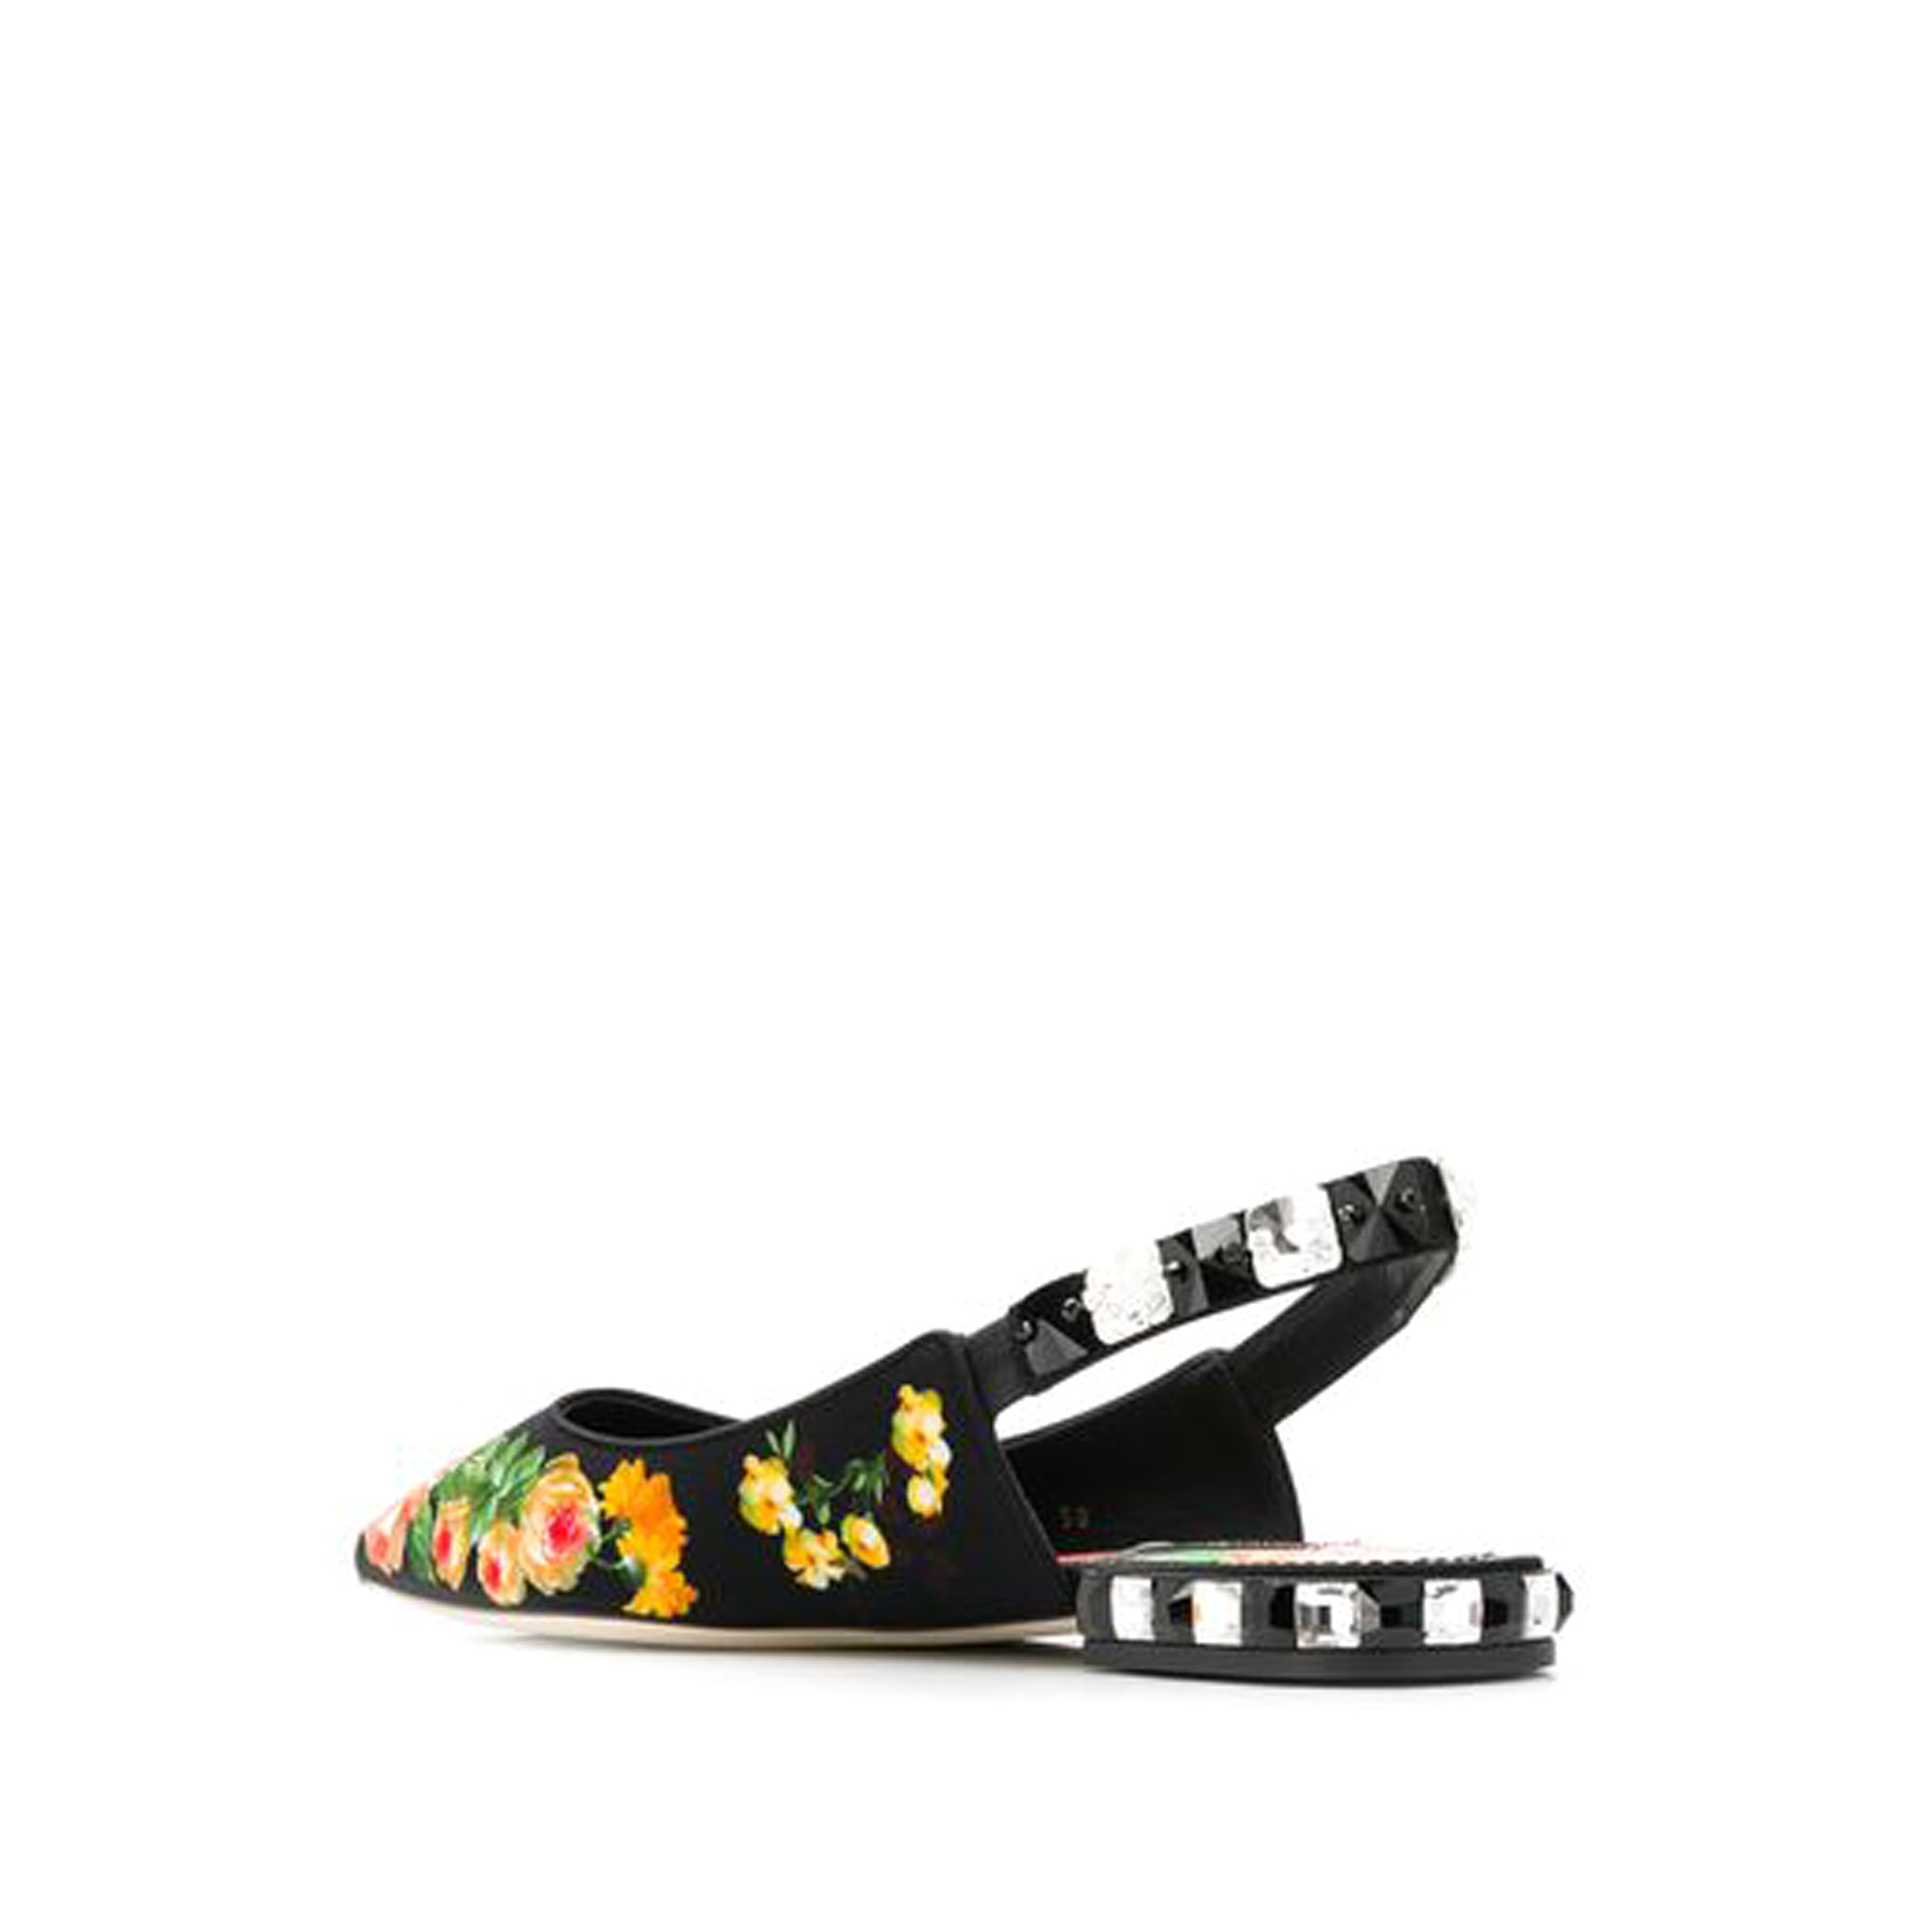 Dolce&Gabbana Black Floral Cotton Flats